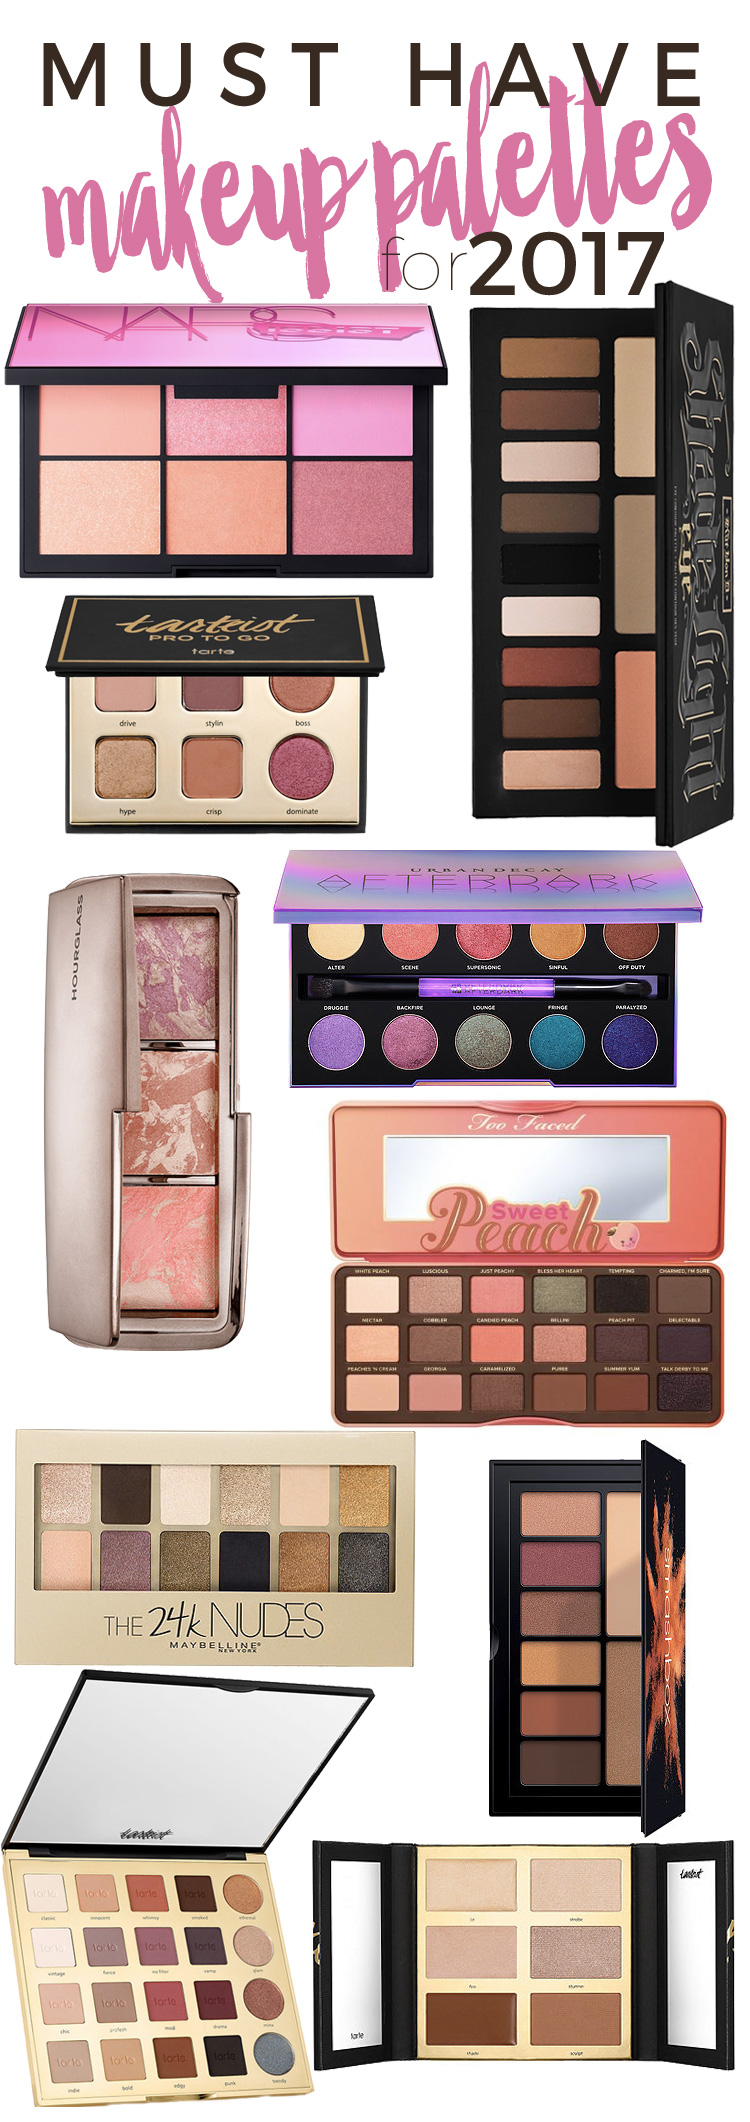 Must Have Wedding Poses: 10 Must Have Makeup Palettes For 2017!